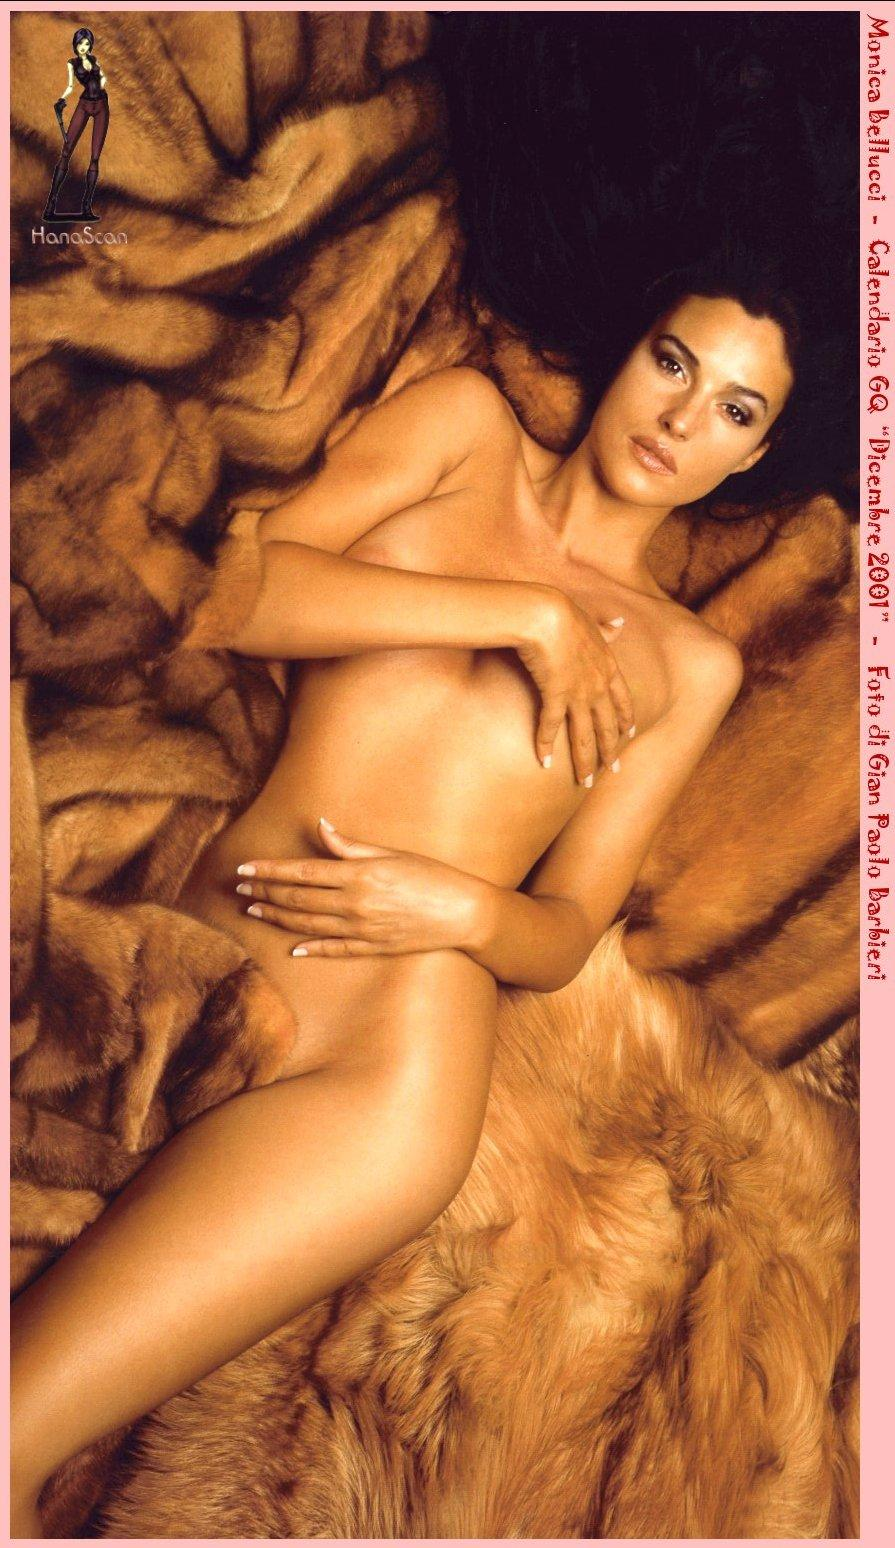 monica bellucci nude hot